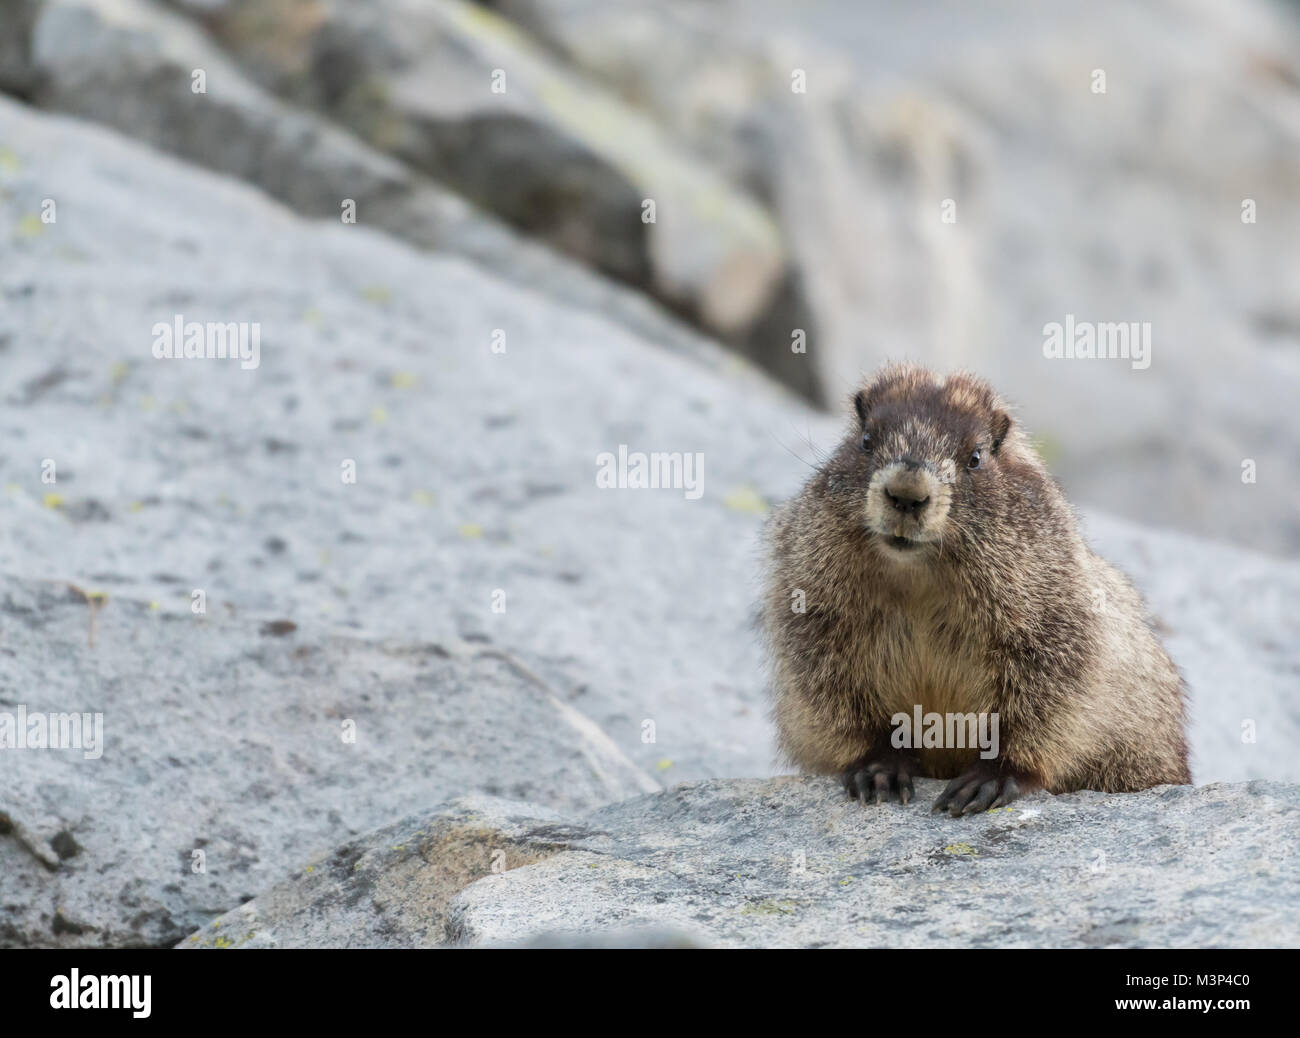 Chubby Marmot Peeks Over Rock with copy space to left - Stock Image